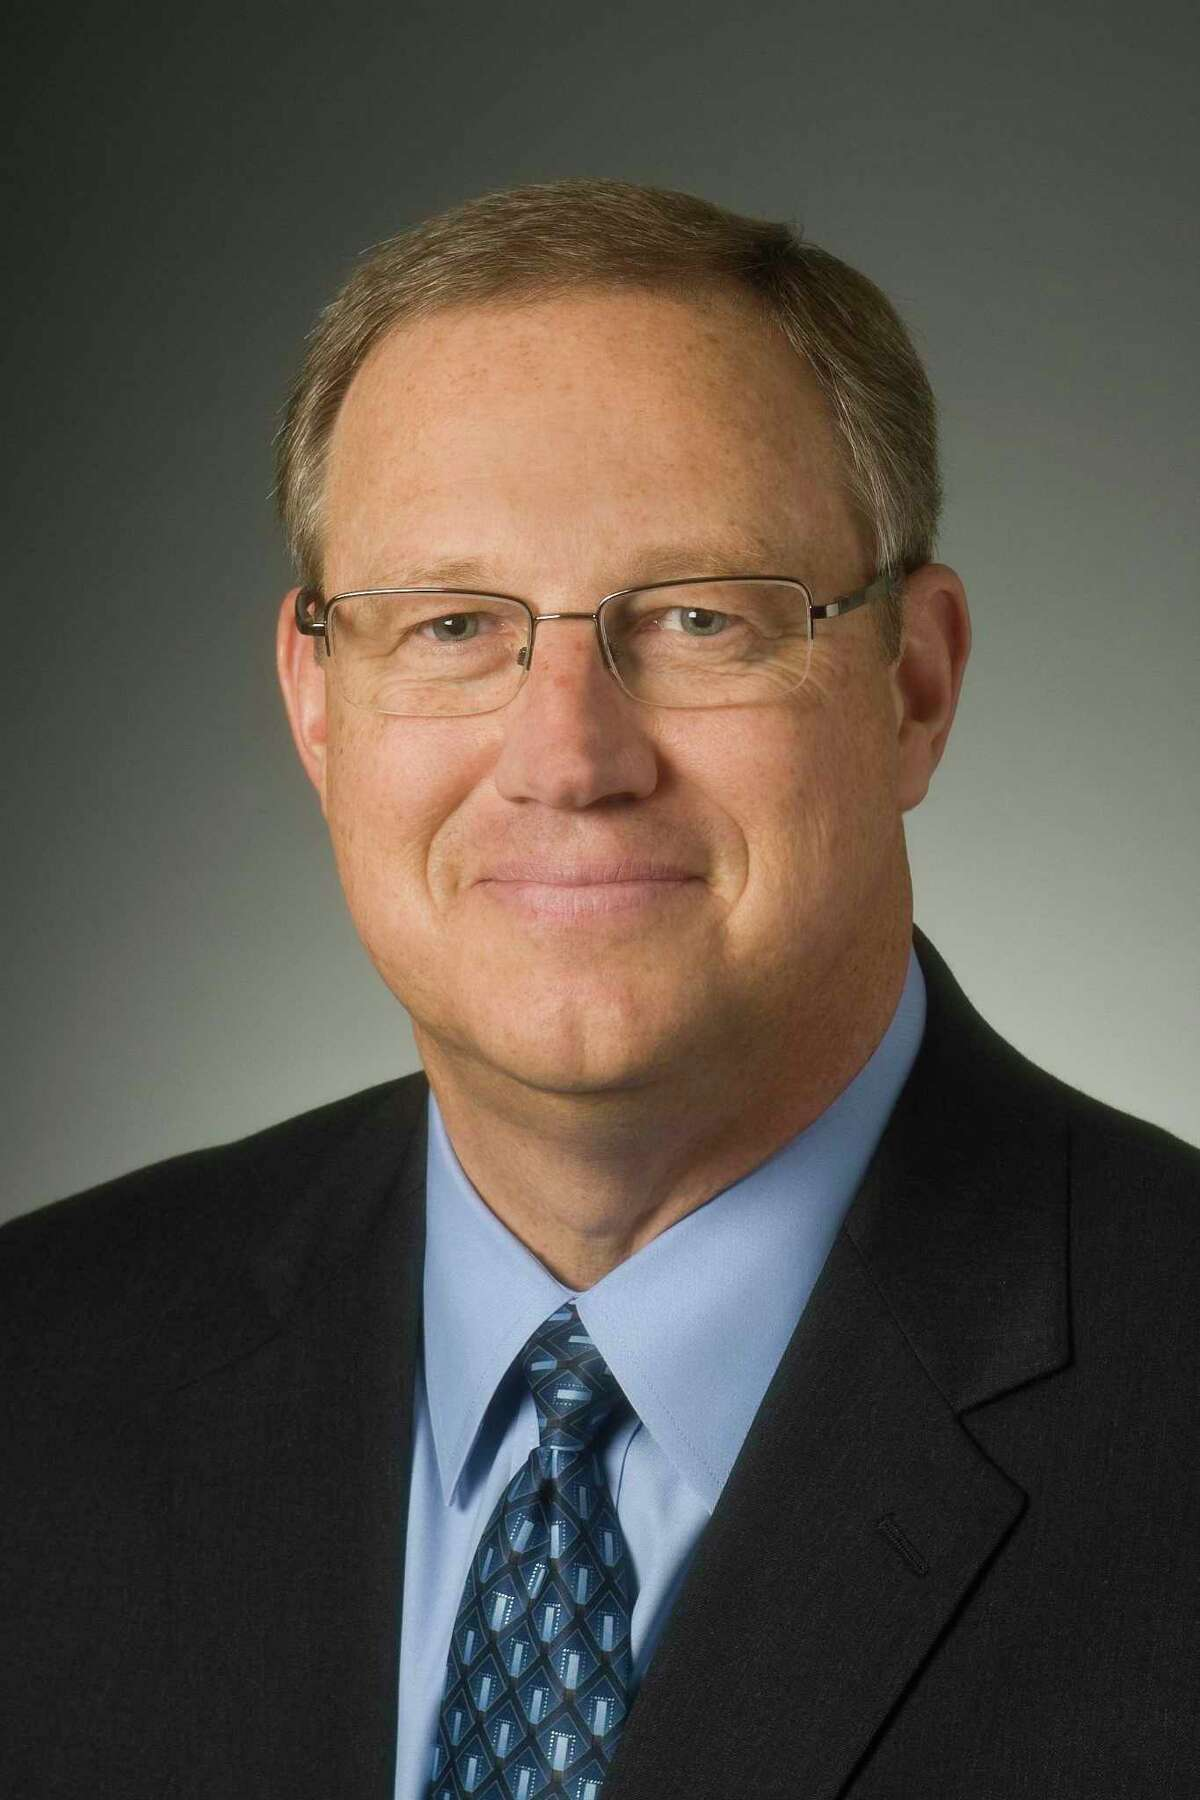 No. 1. Greg Garland, chairman and CEO of Phillips 66.